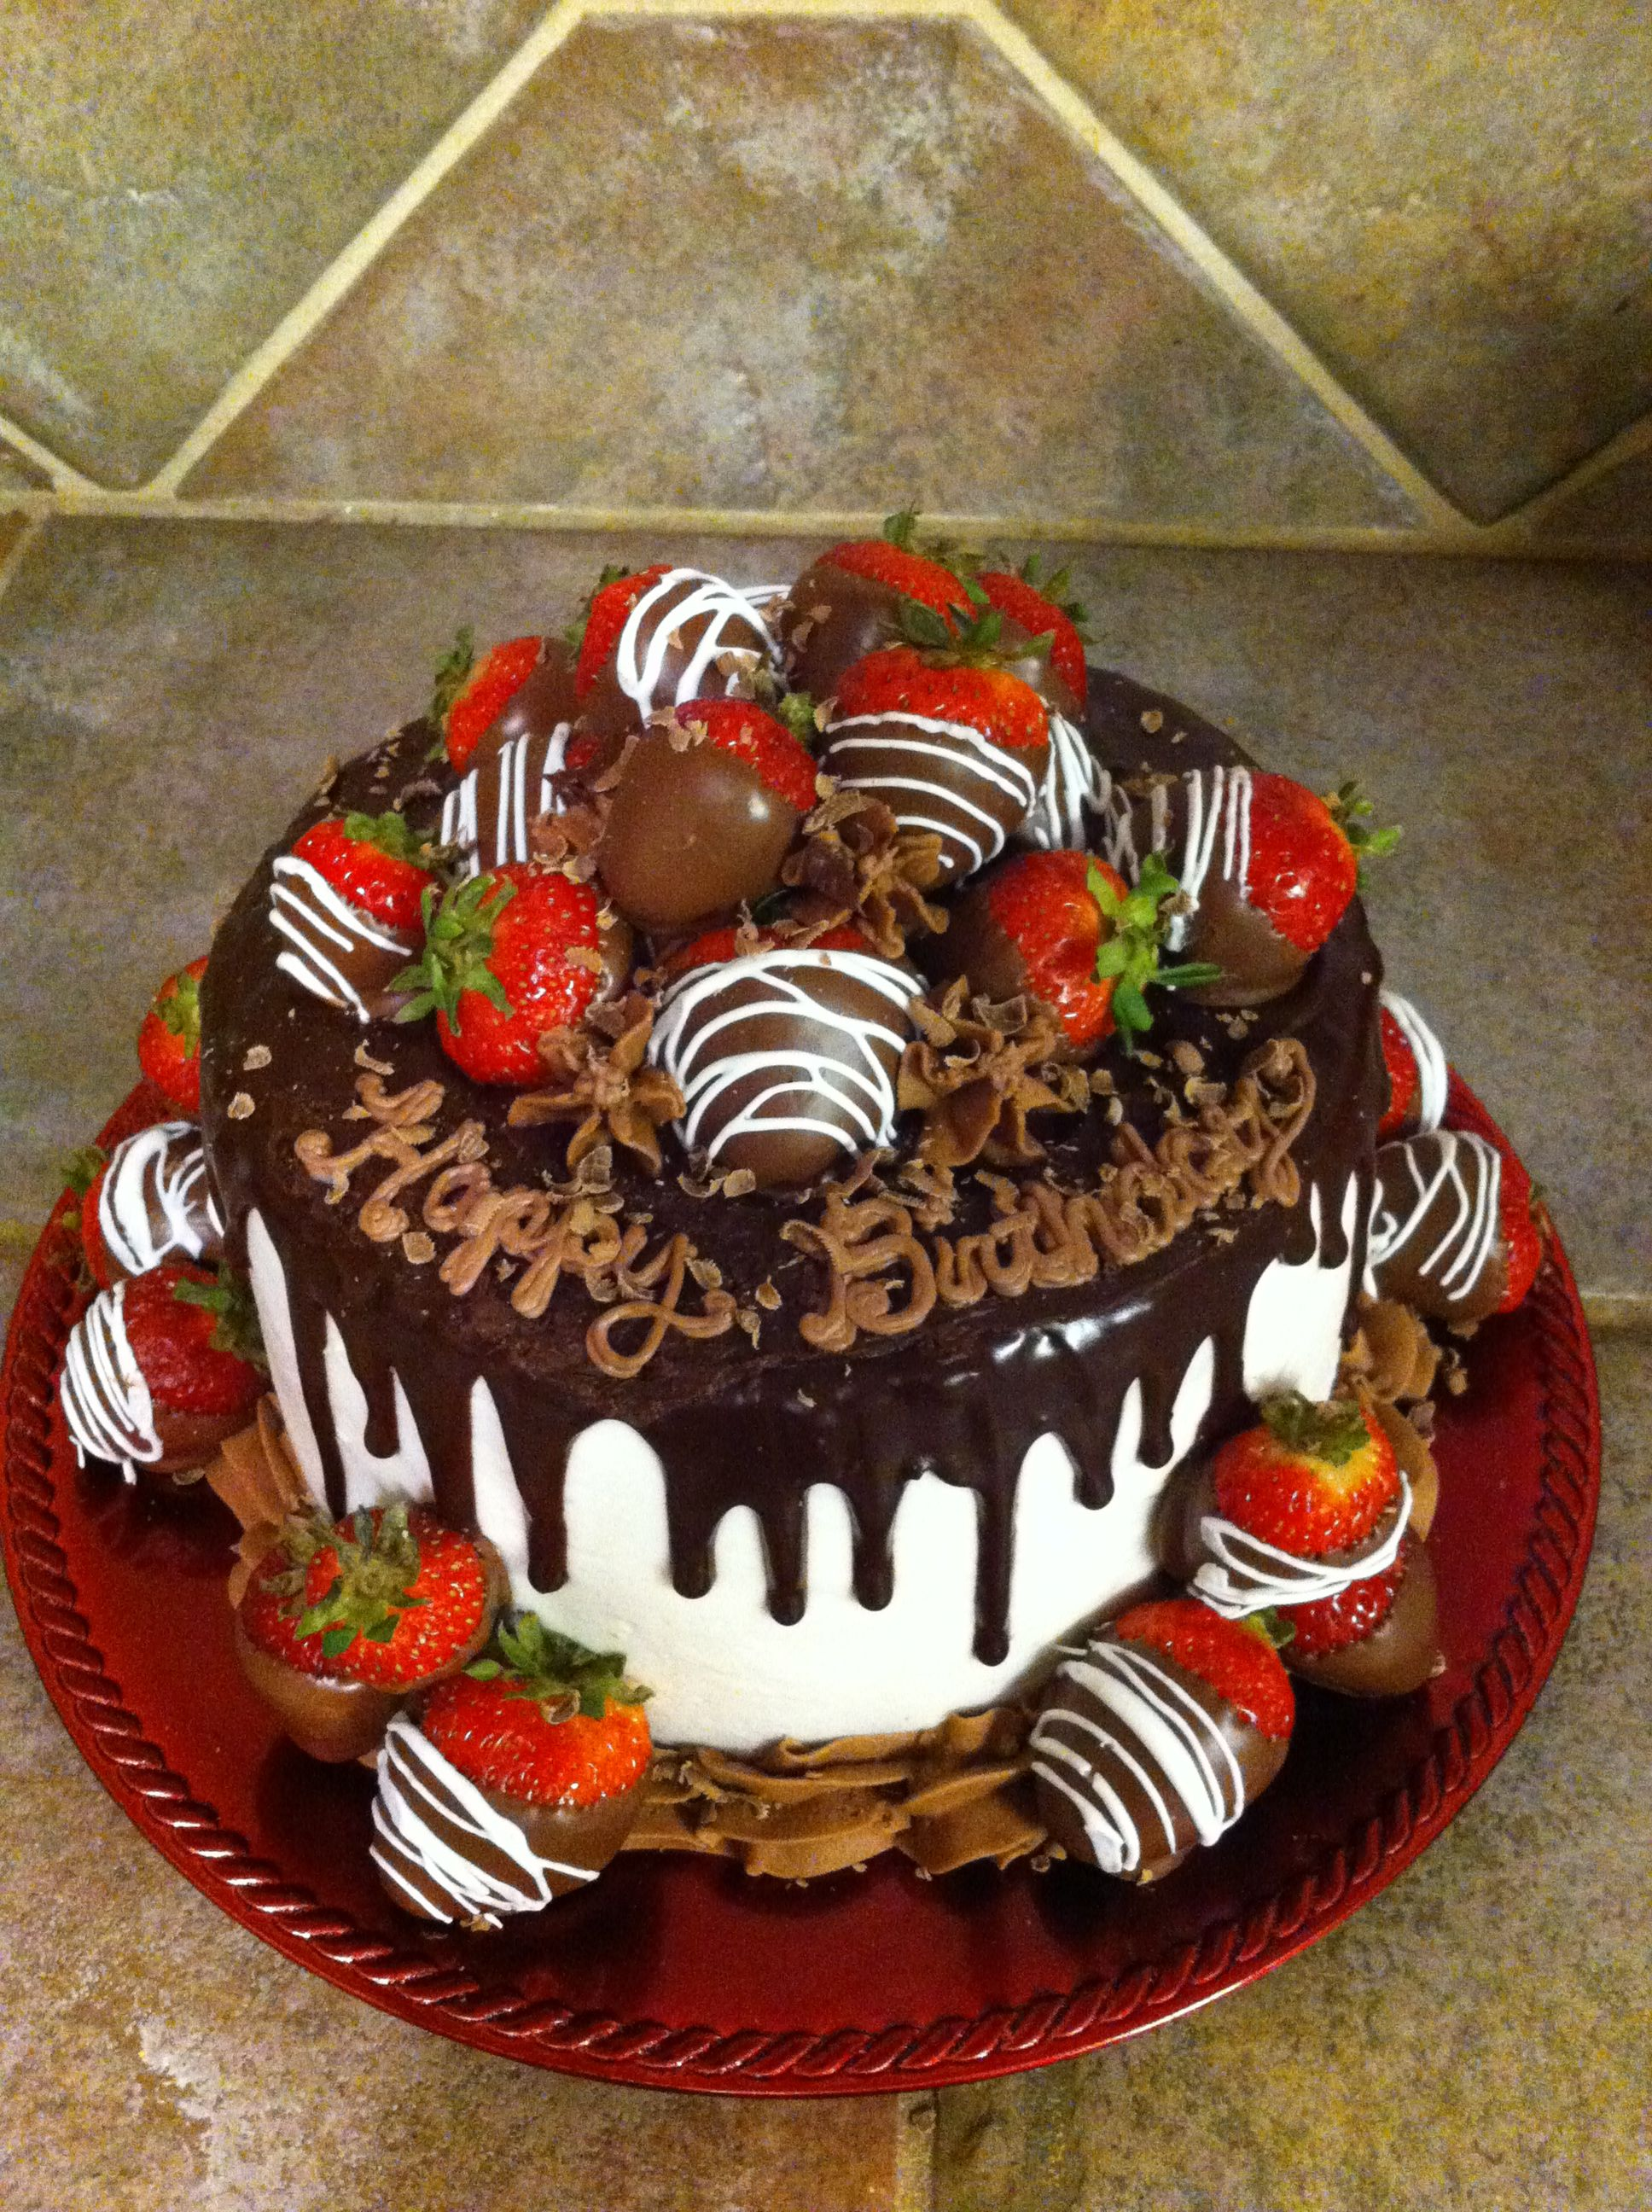 Chocolate Covered Strawberries Birthday Cake